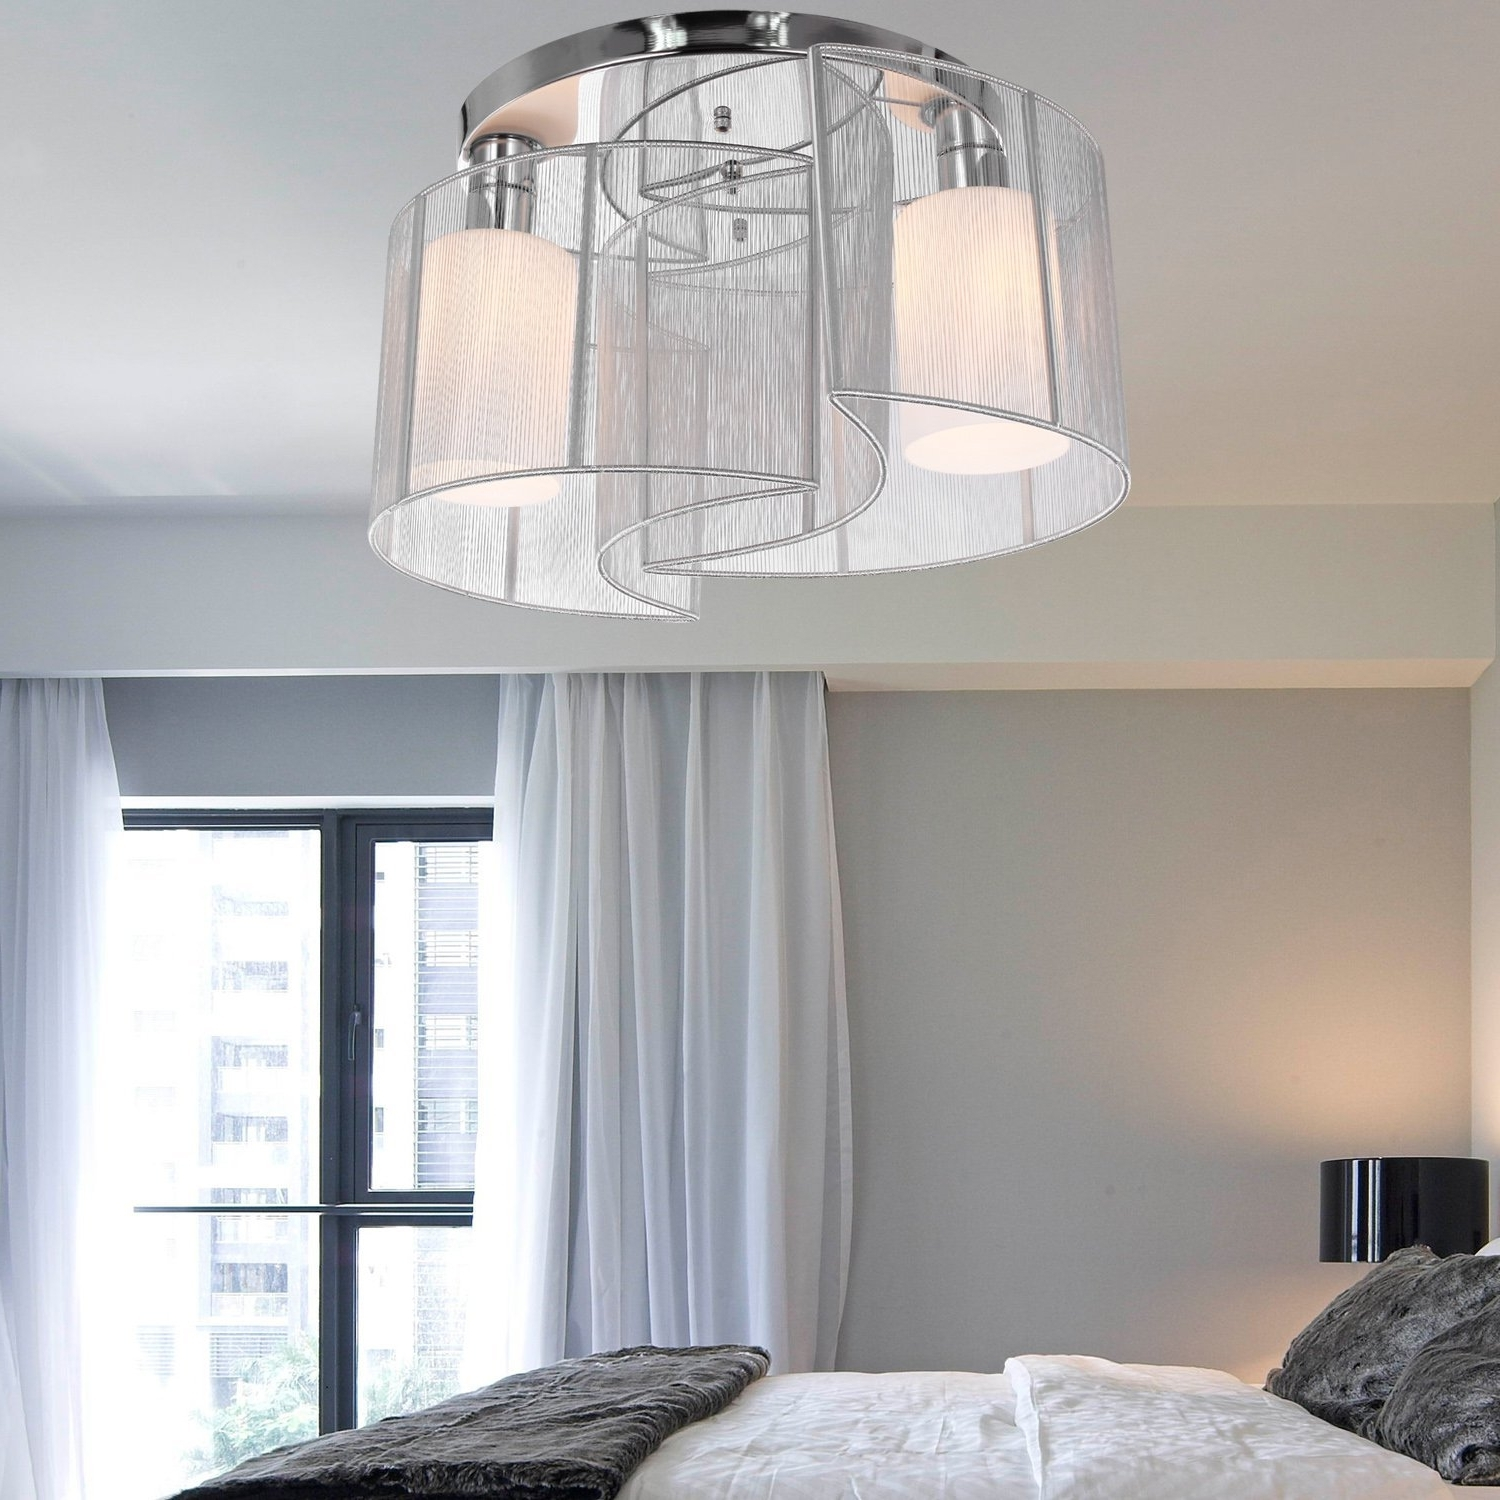 2019 Light Fixture : Night Stand Lamps Master Bedroom Ceiling Ideas Intended For Chandelier Night Stand Lamps (View 7 of 20)